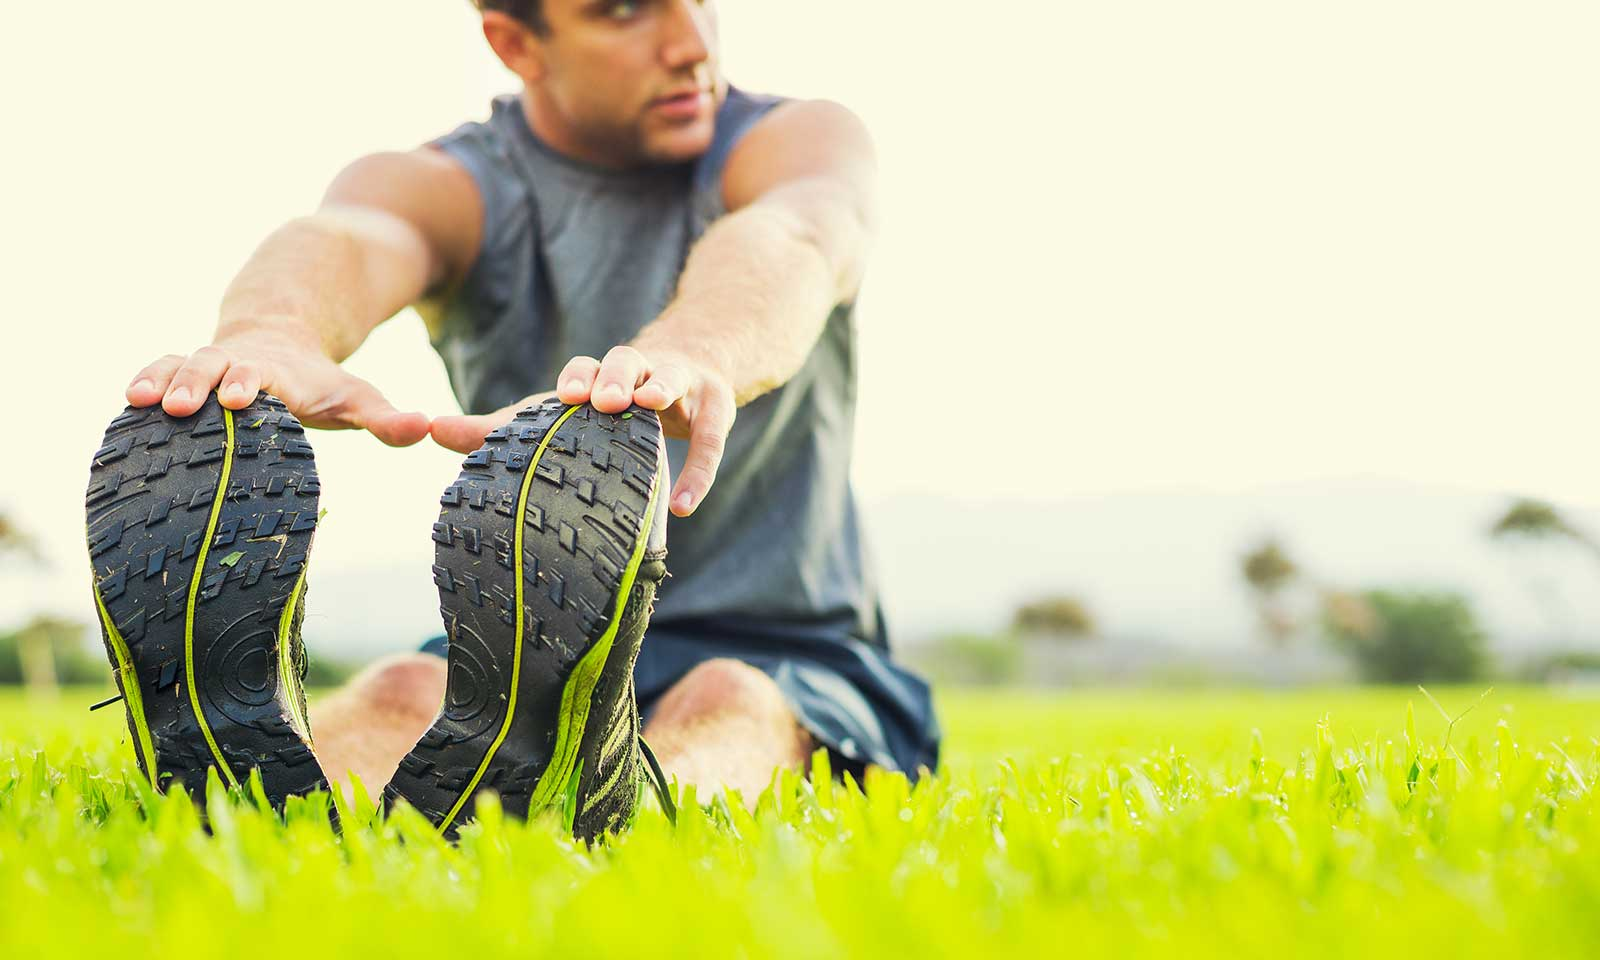 5 Interesting Facts About Health And Fitness